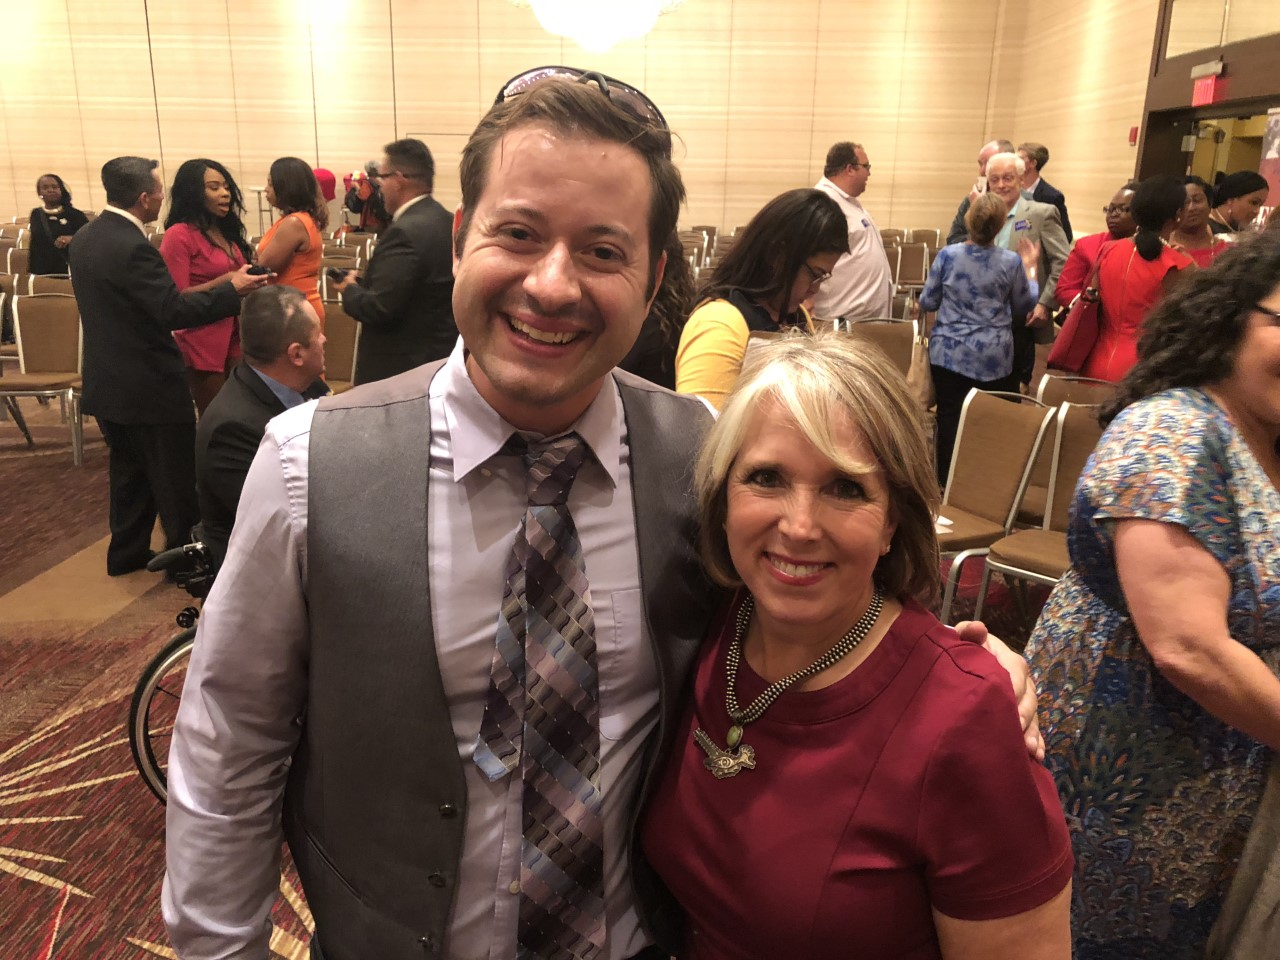 Greg with New Mexico Governor Michelle Lujan Grisham